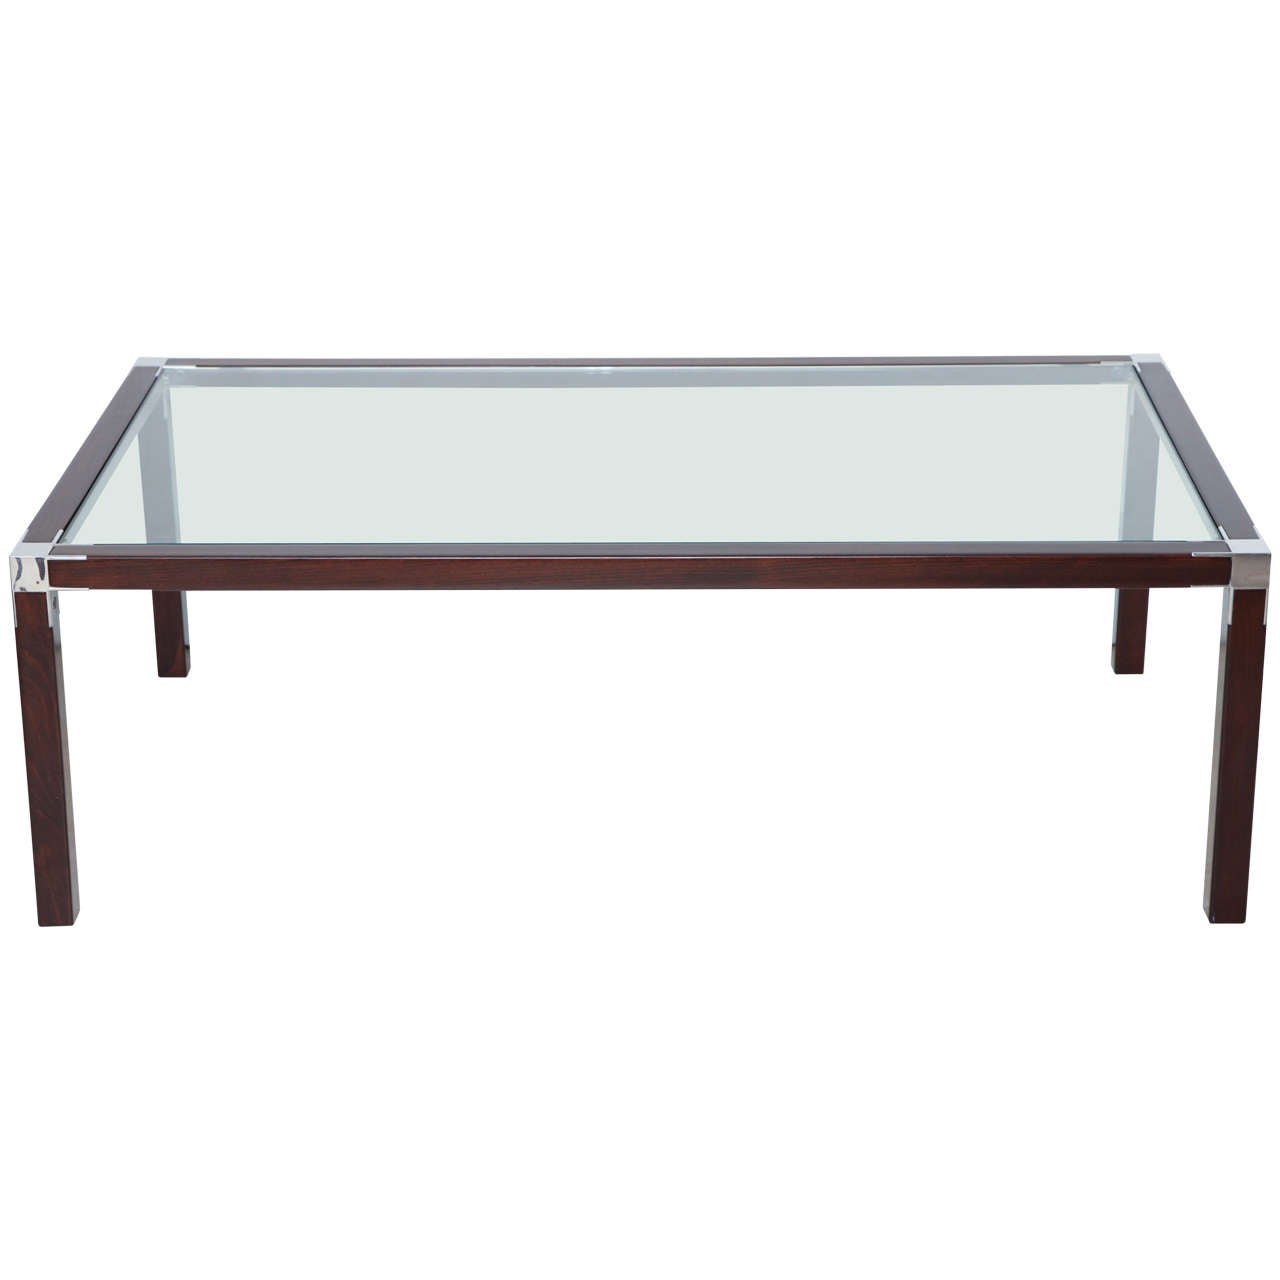 Mid Century Modern Beech Wood And Nickel Coffee Table With Smoked Glass Top At 1stdibs: wood coffee table glass top